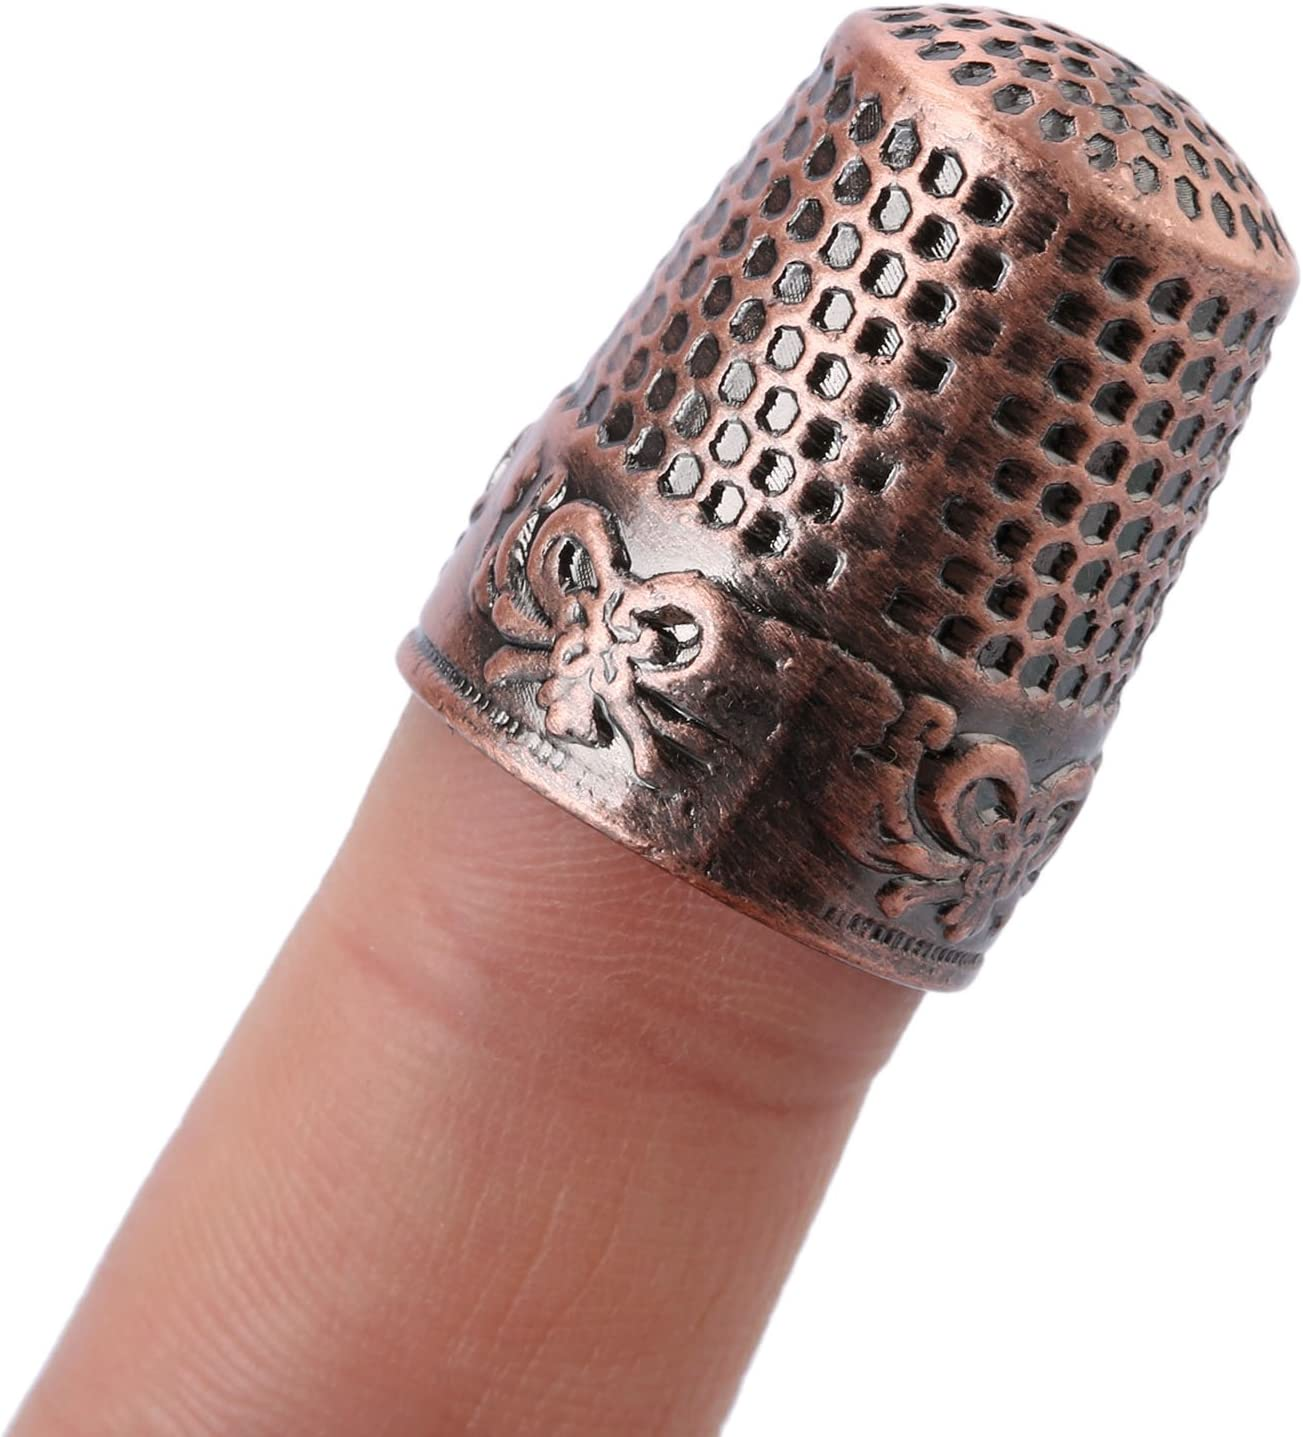 1Pc Red Bronze Finger Thimble Sewing Grip Fingertip Protector Metal Shield Pin Needles Partner for DIY Crafts Tools Needlework